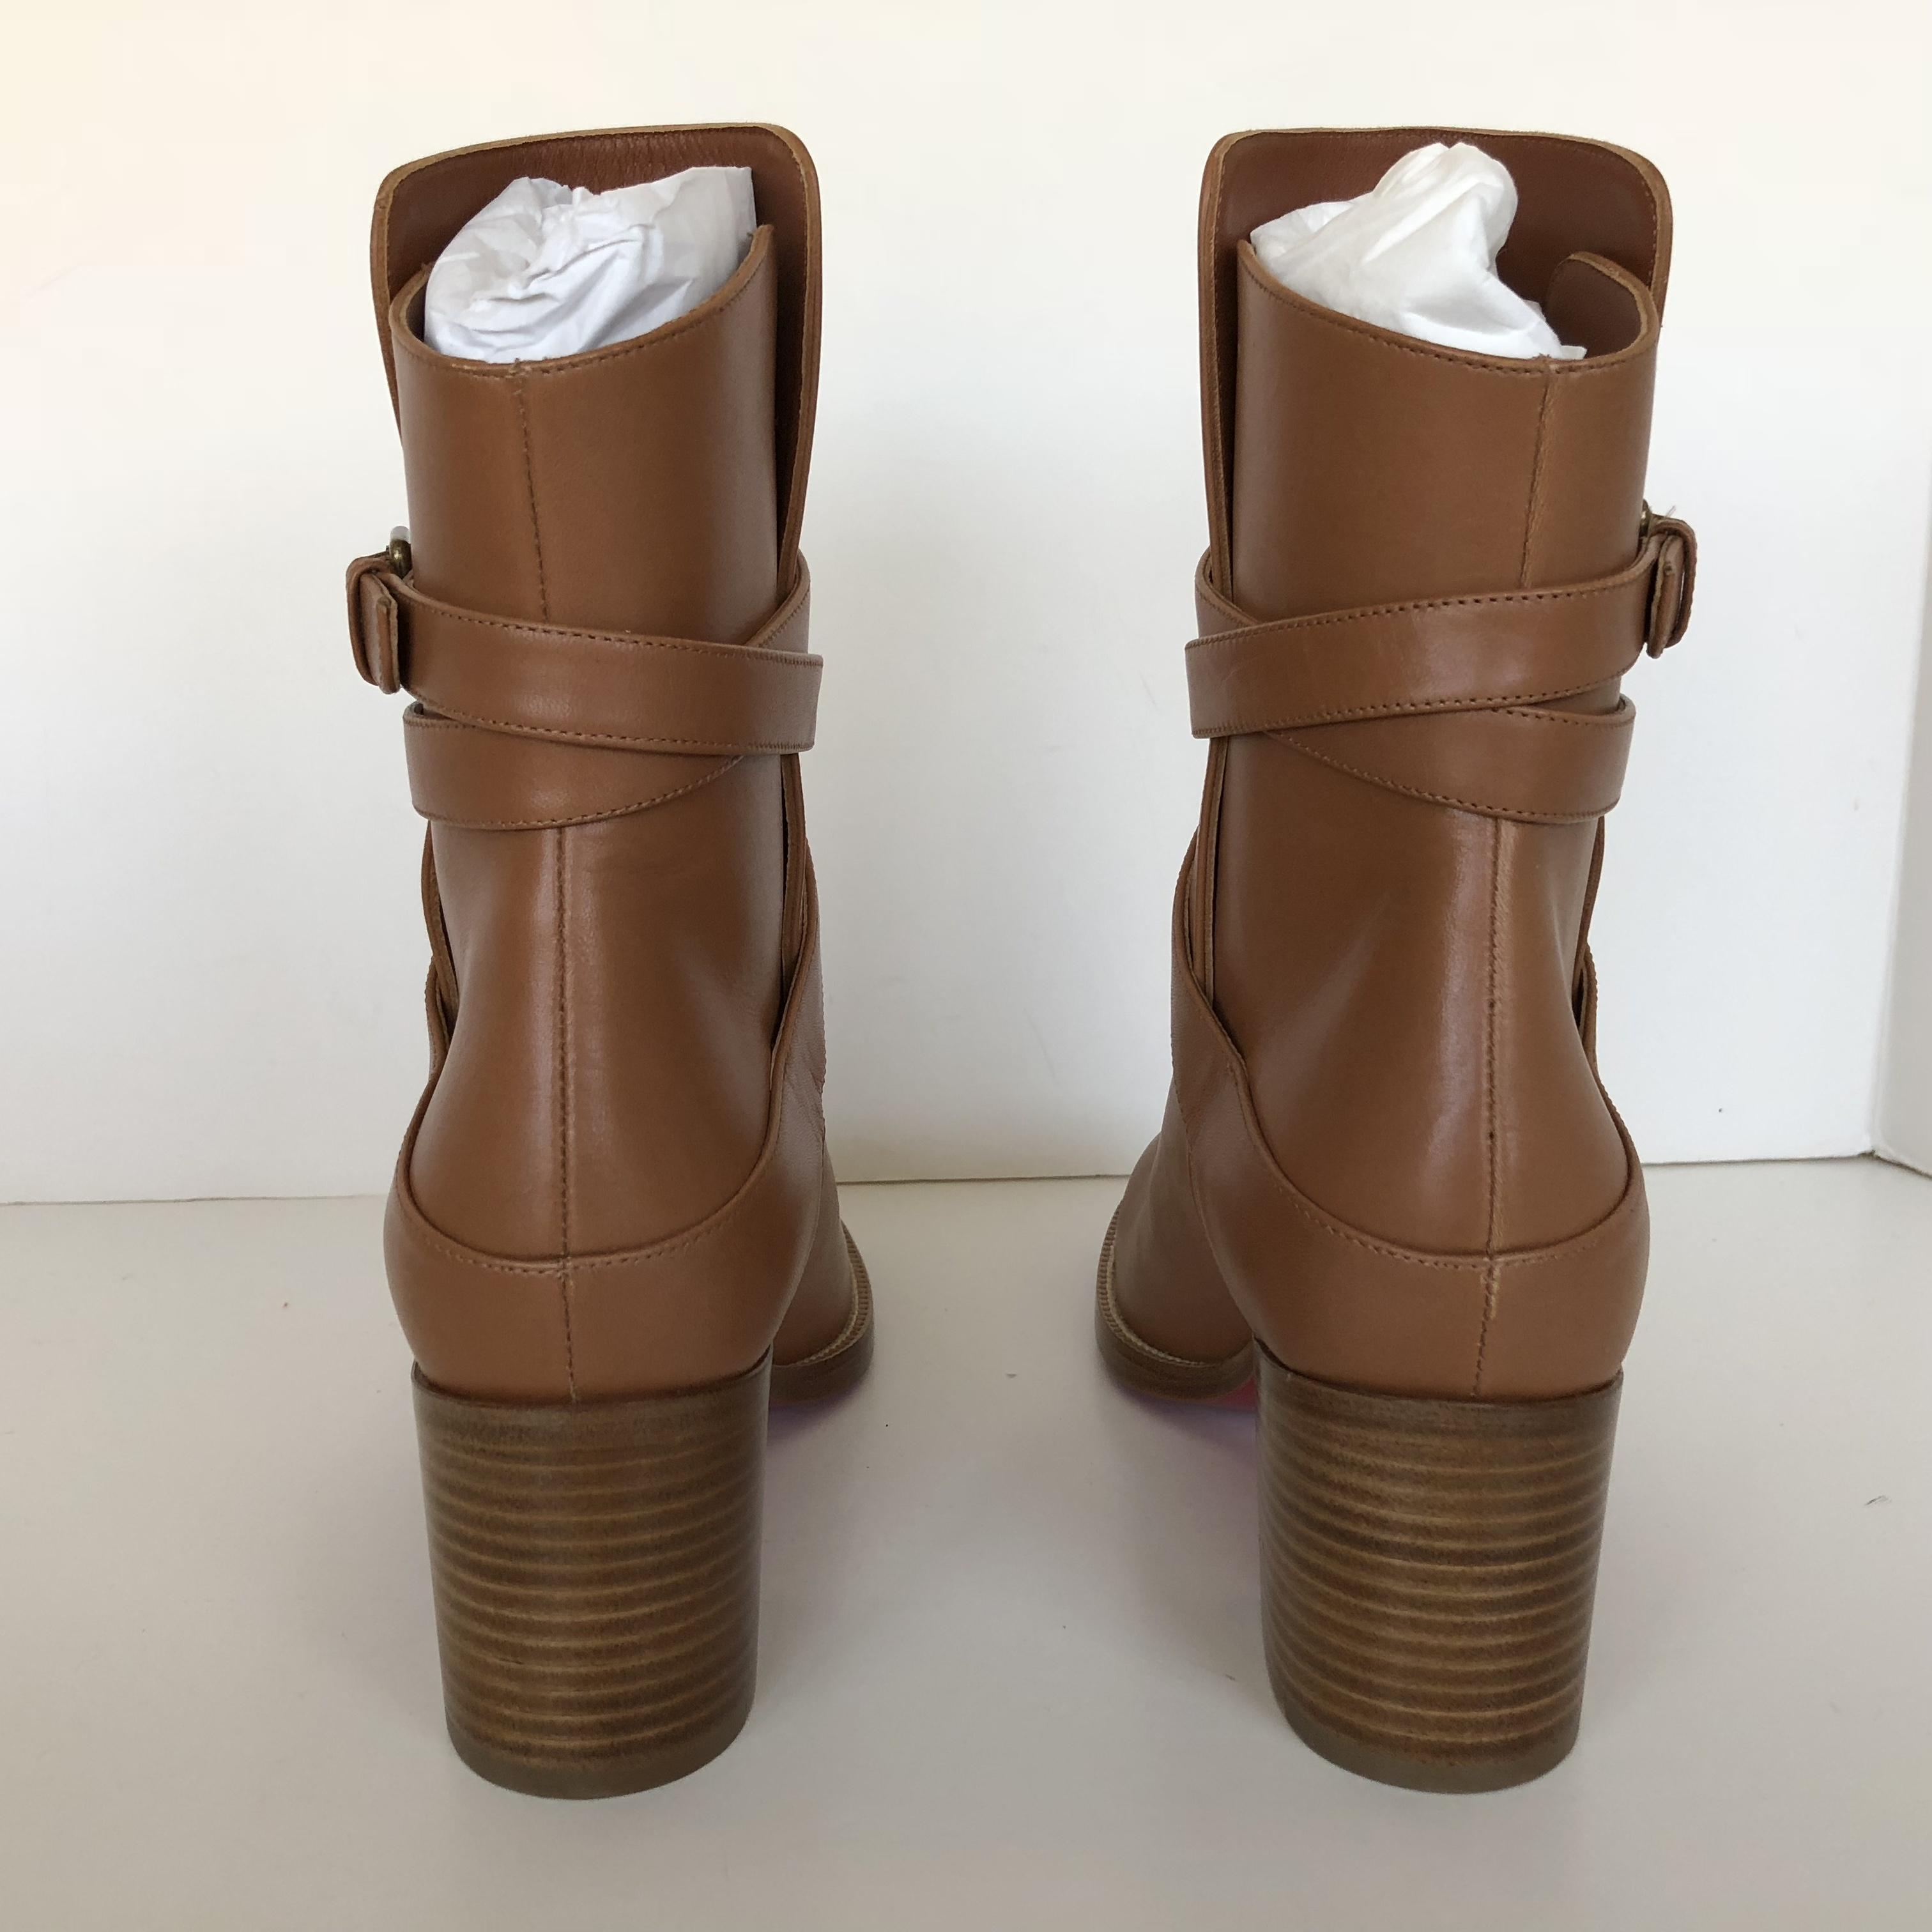 92f31597a38e ... Christian Louboutin Cuoio Karistrap 70 Calf Leather Ankle Boots Booties  Size Size Size EU 36.5 ...